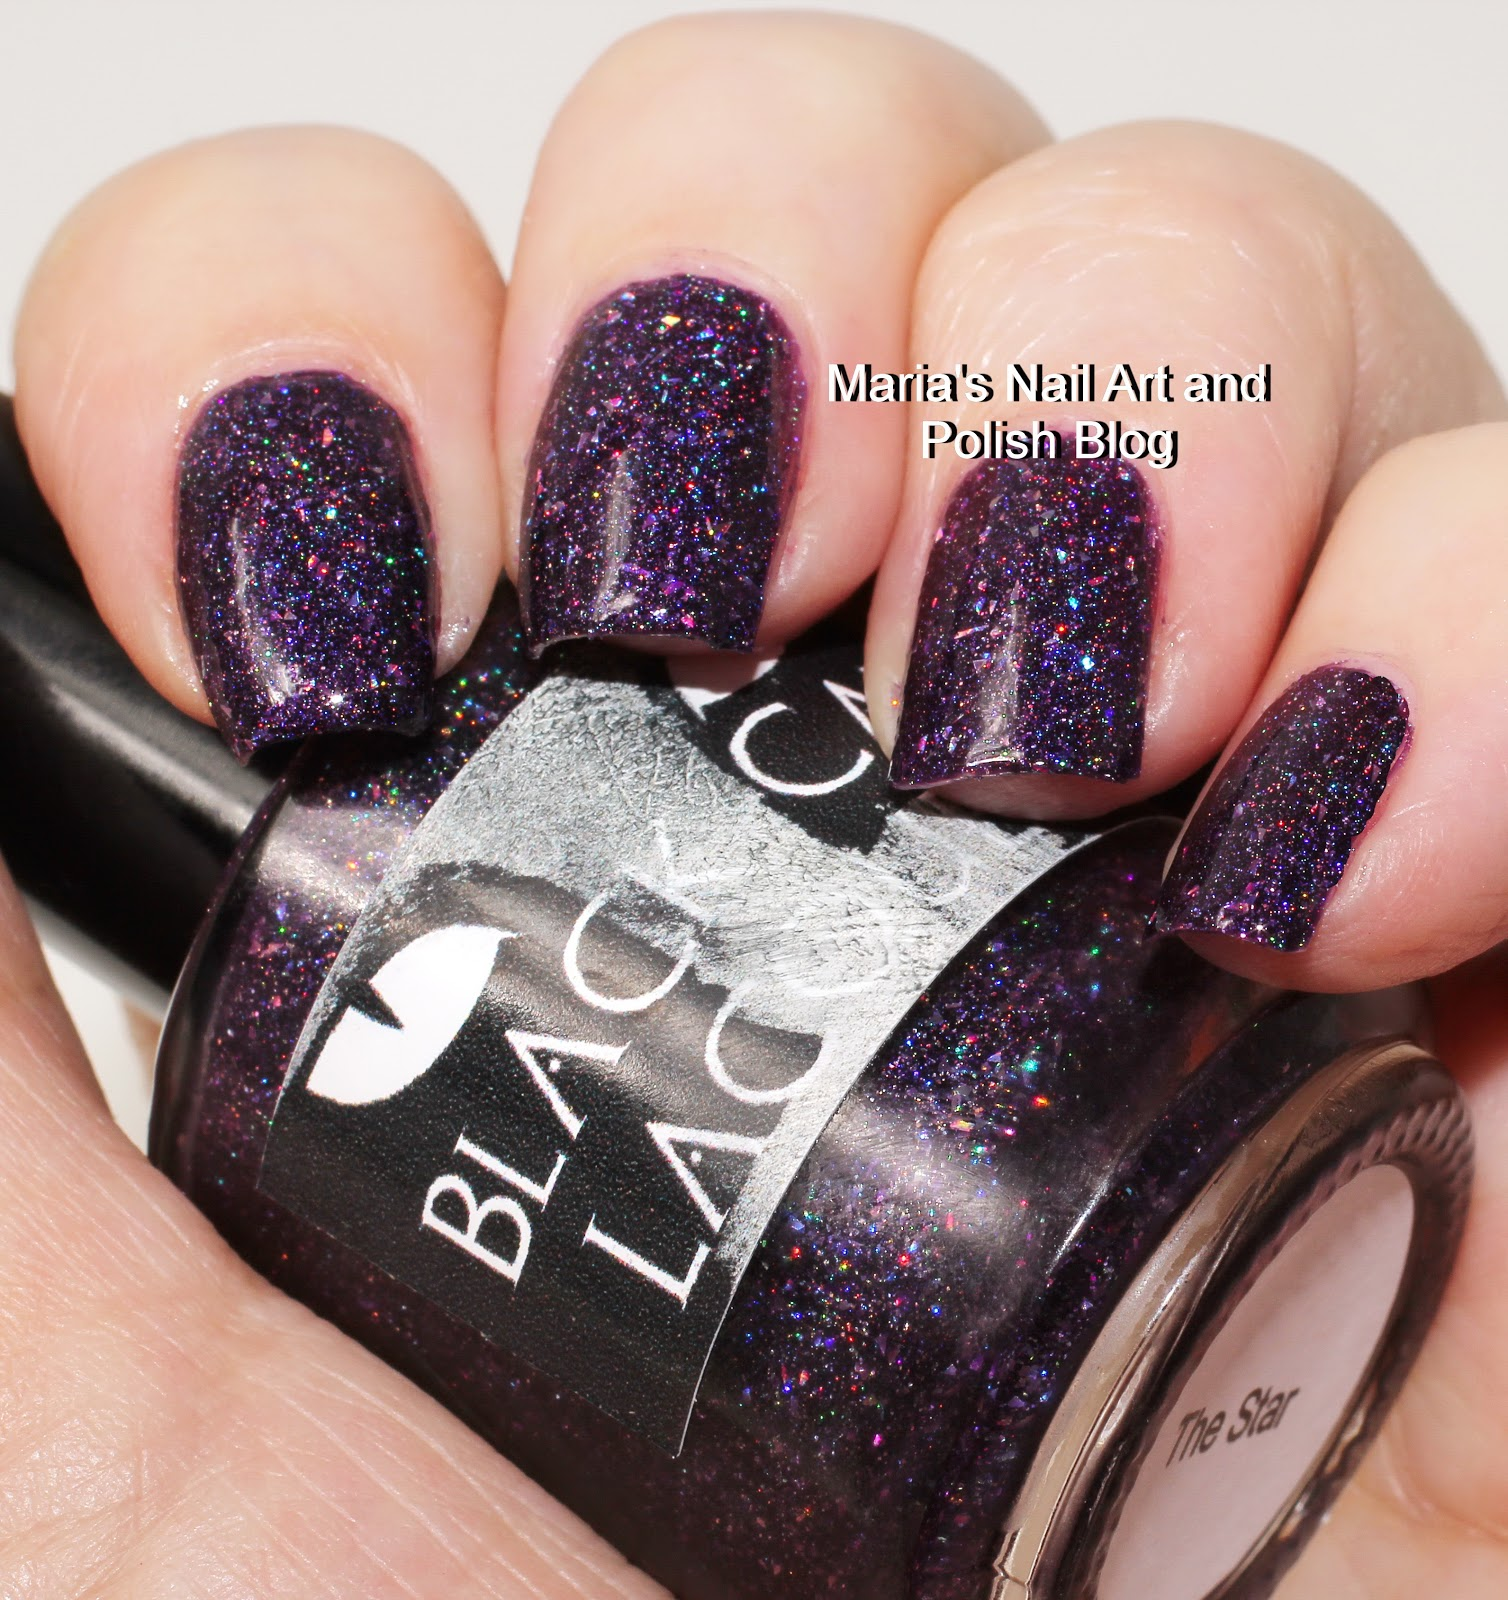 Marias Nail Art And Polish Blog Flushed With Stripes And: Marias Nail Art And Polish Blog: Black Cat Lacquer The